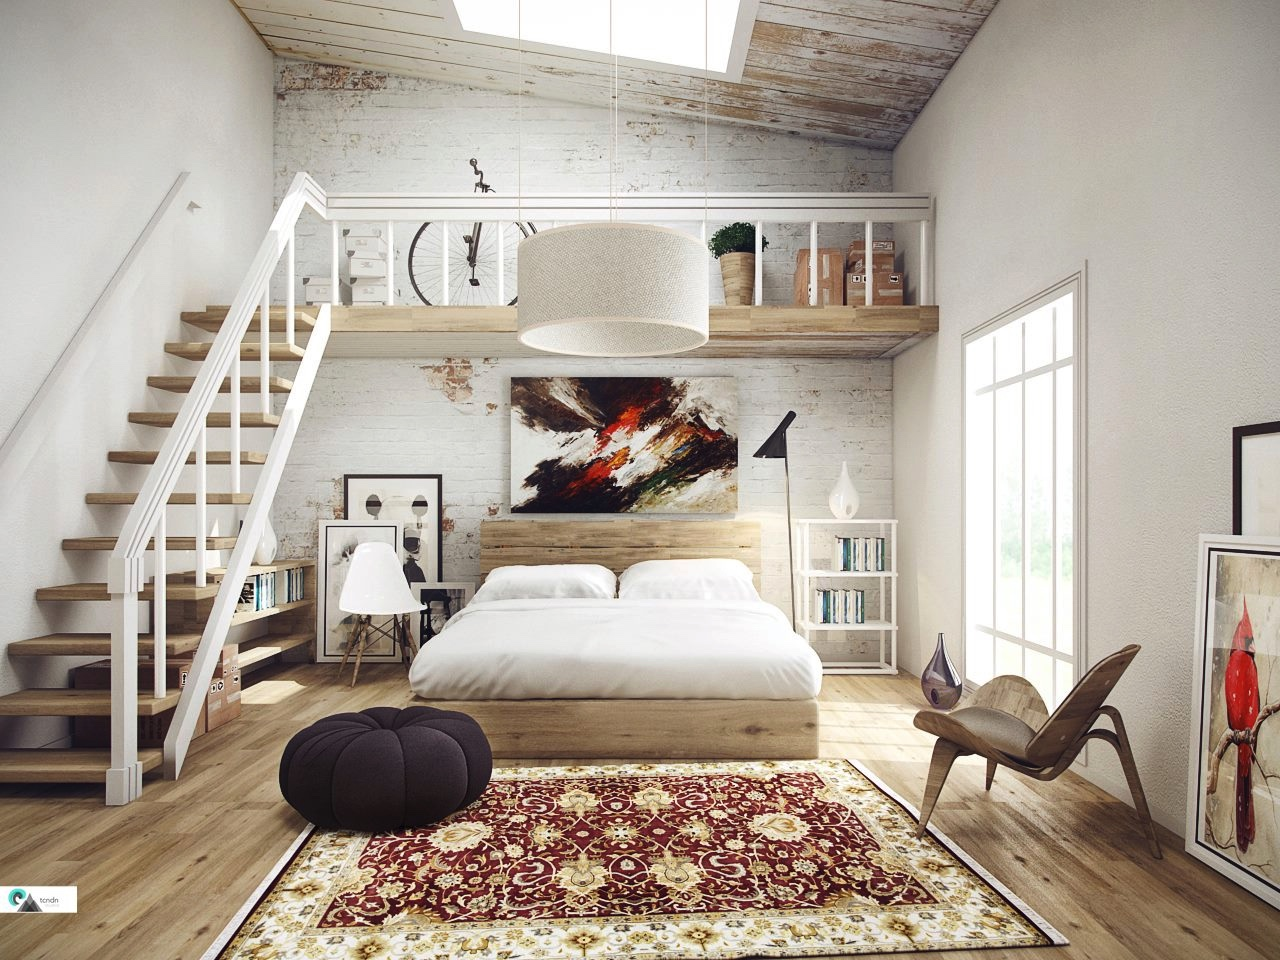 Creative loft bedroom design